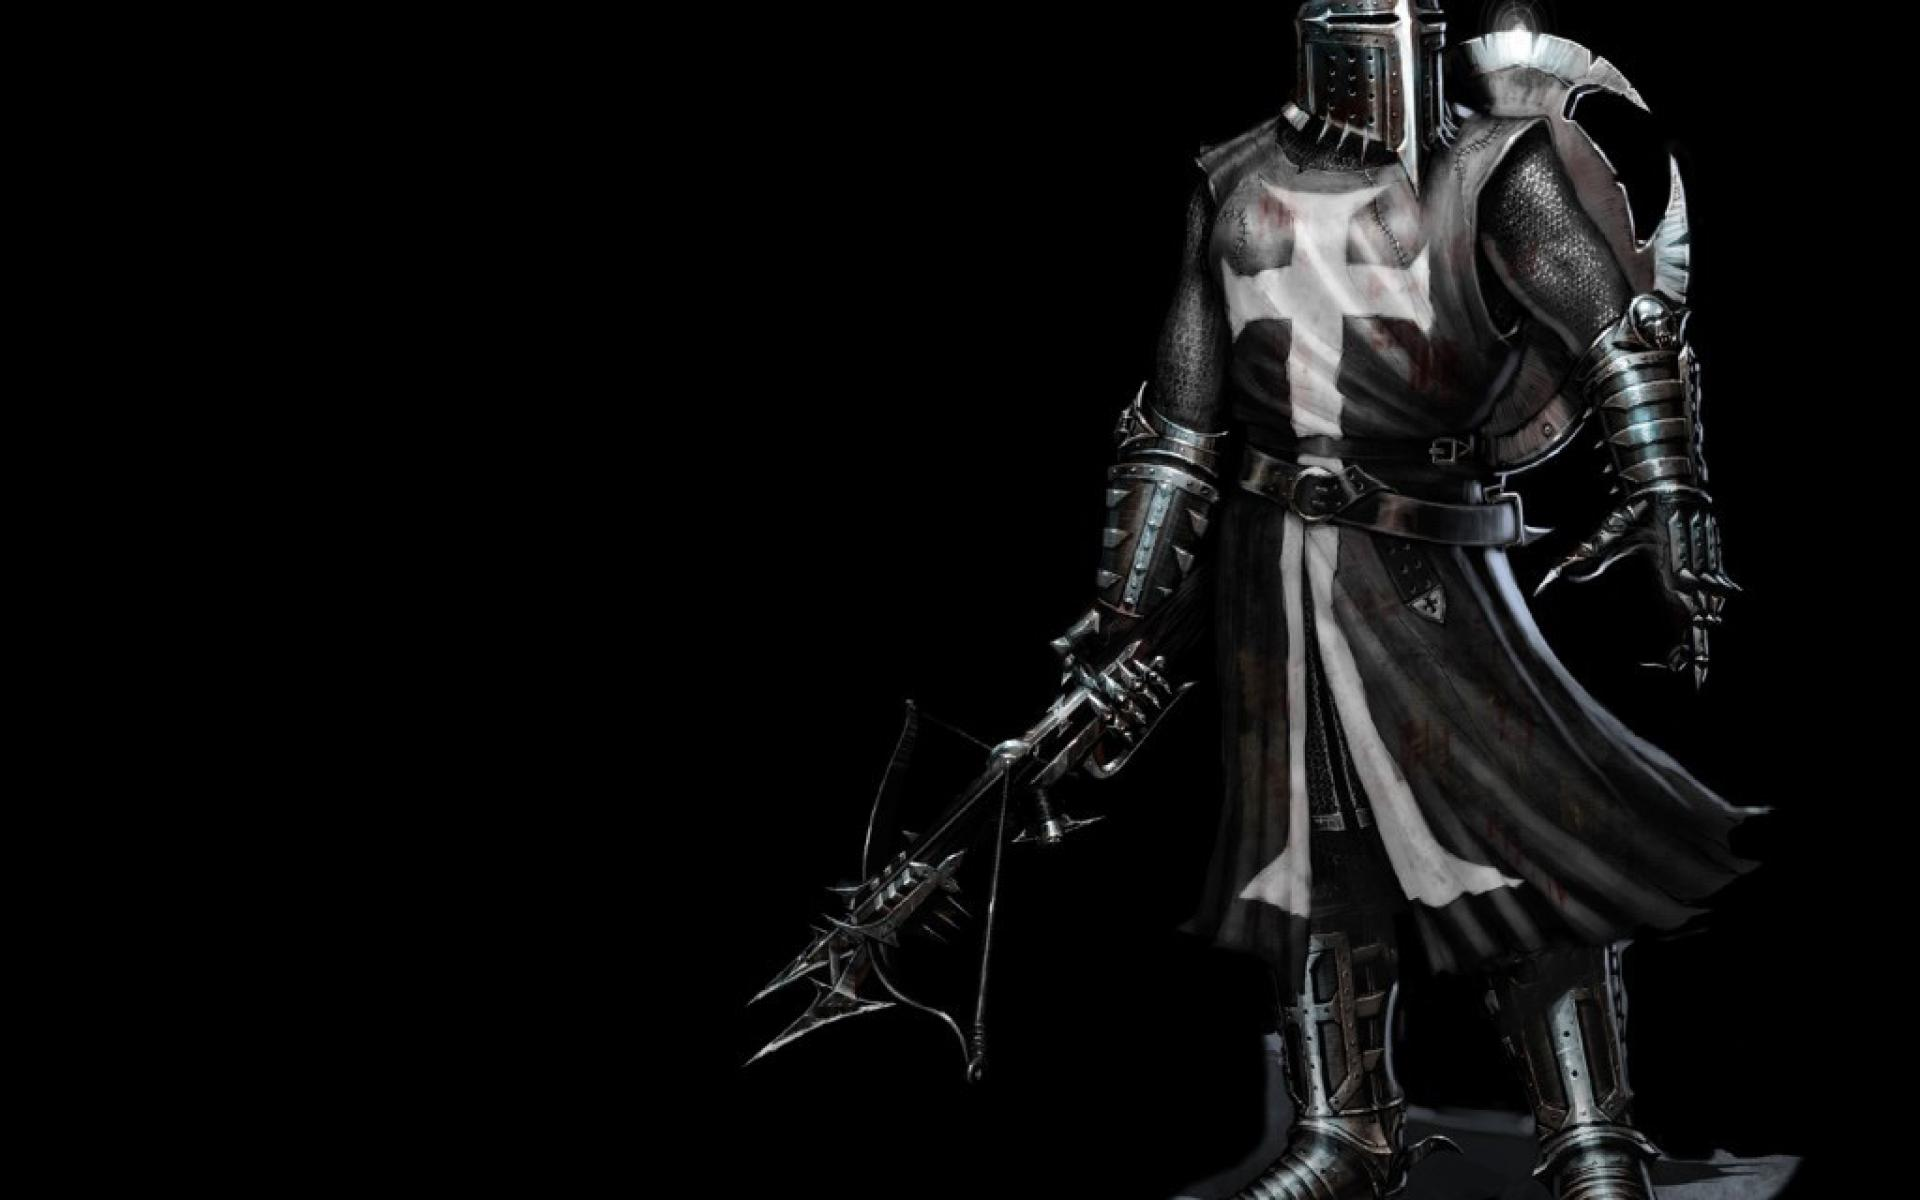 knights crusader warriors templar HD Wallpaper   General 431805 1920x1200